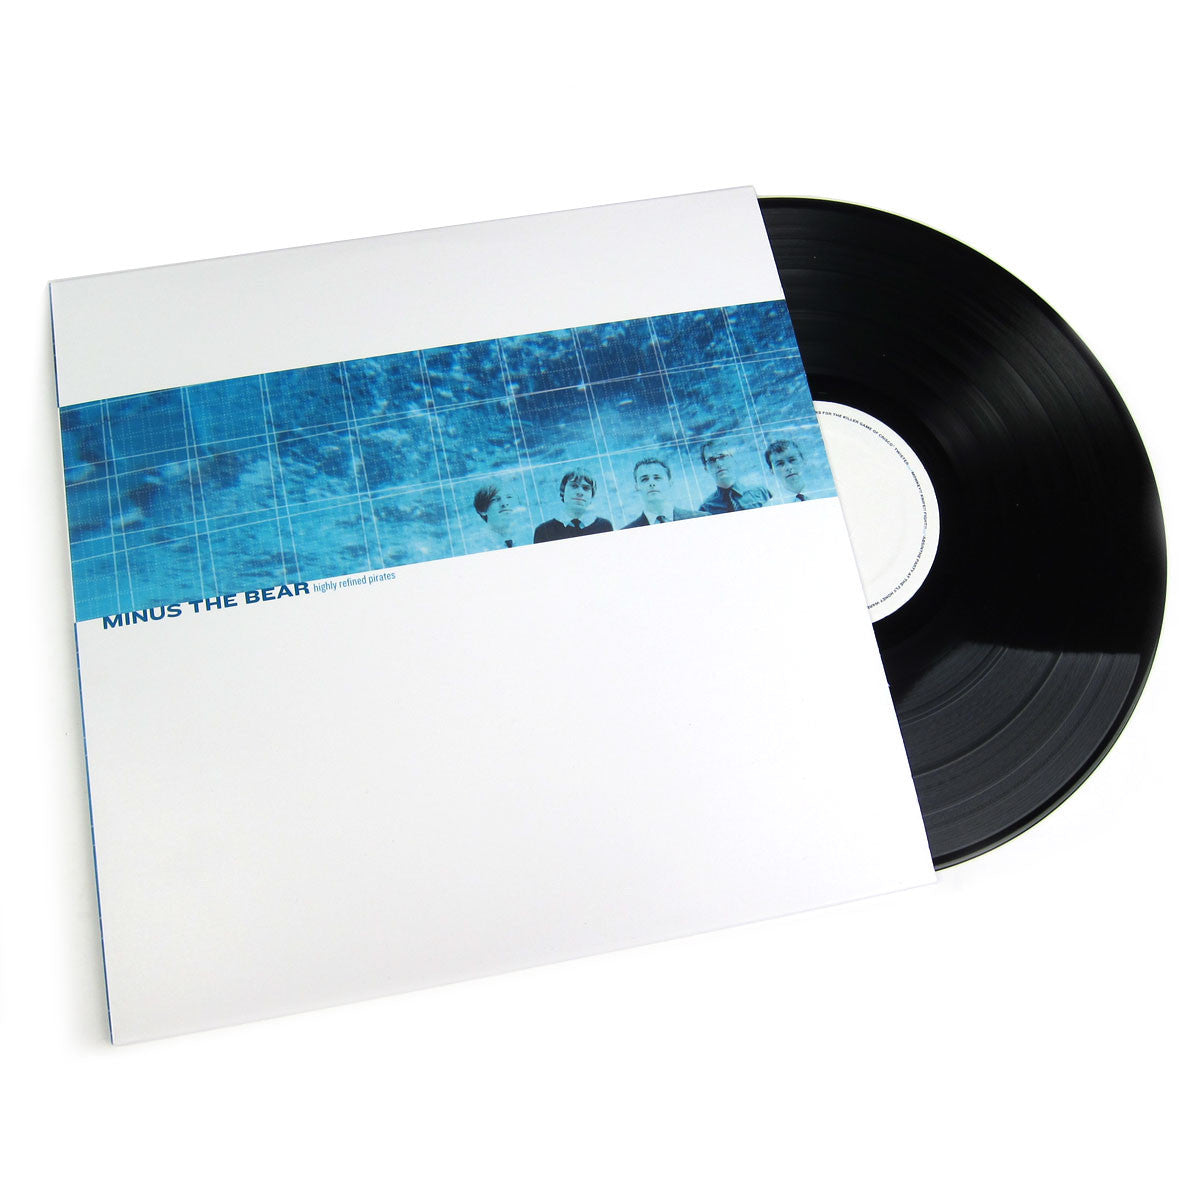 Minus The Bear: Highly Refined Pirates Vinyl LP